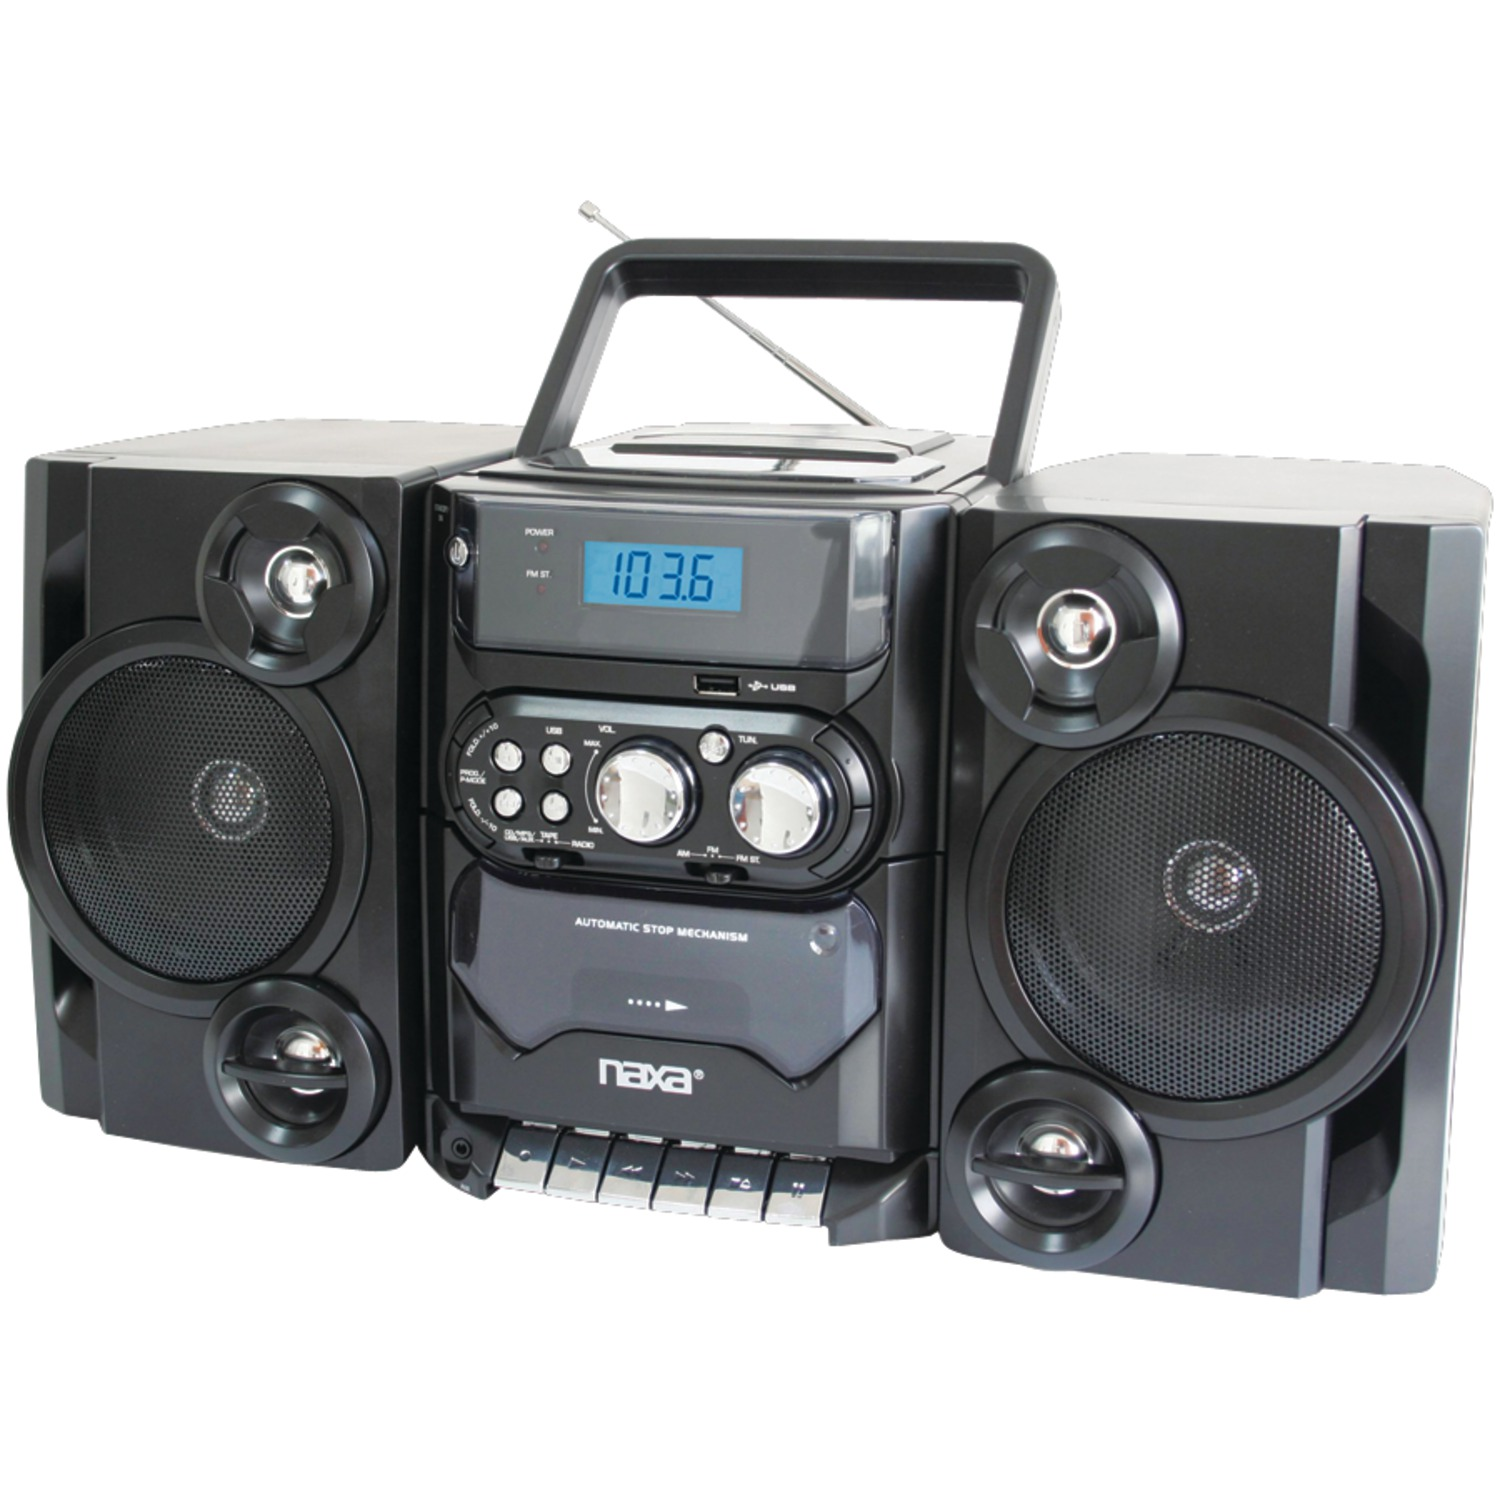 Naxa NPB428 Portable CD/MP3 Player with AM/FM Radio, Detachable Speakers, Remote & USB Input